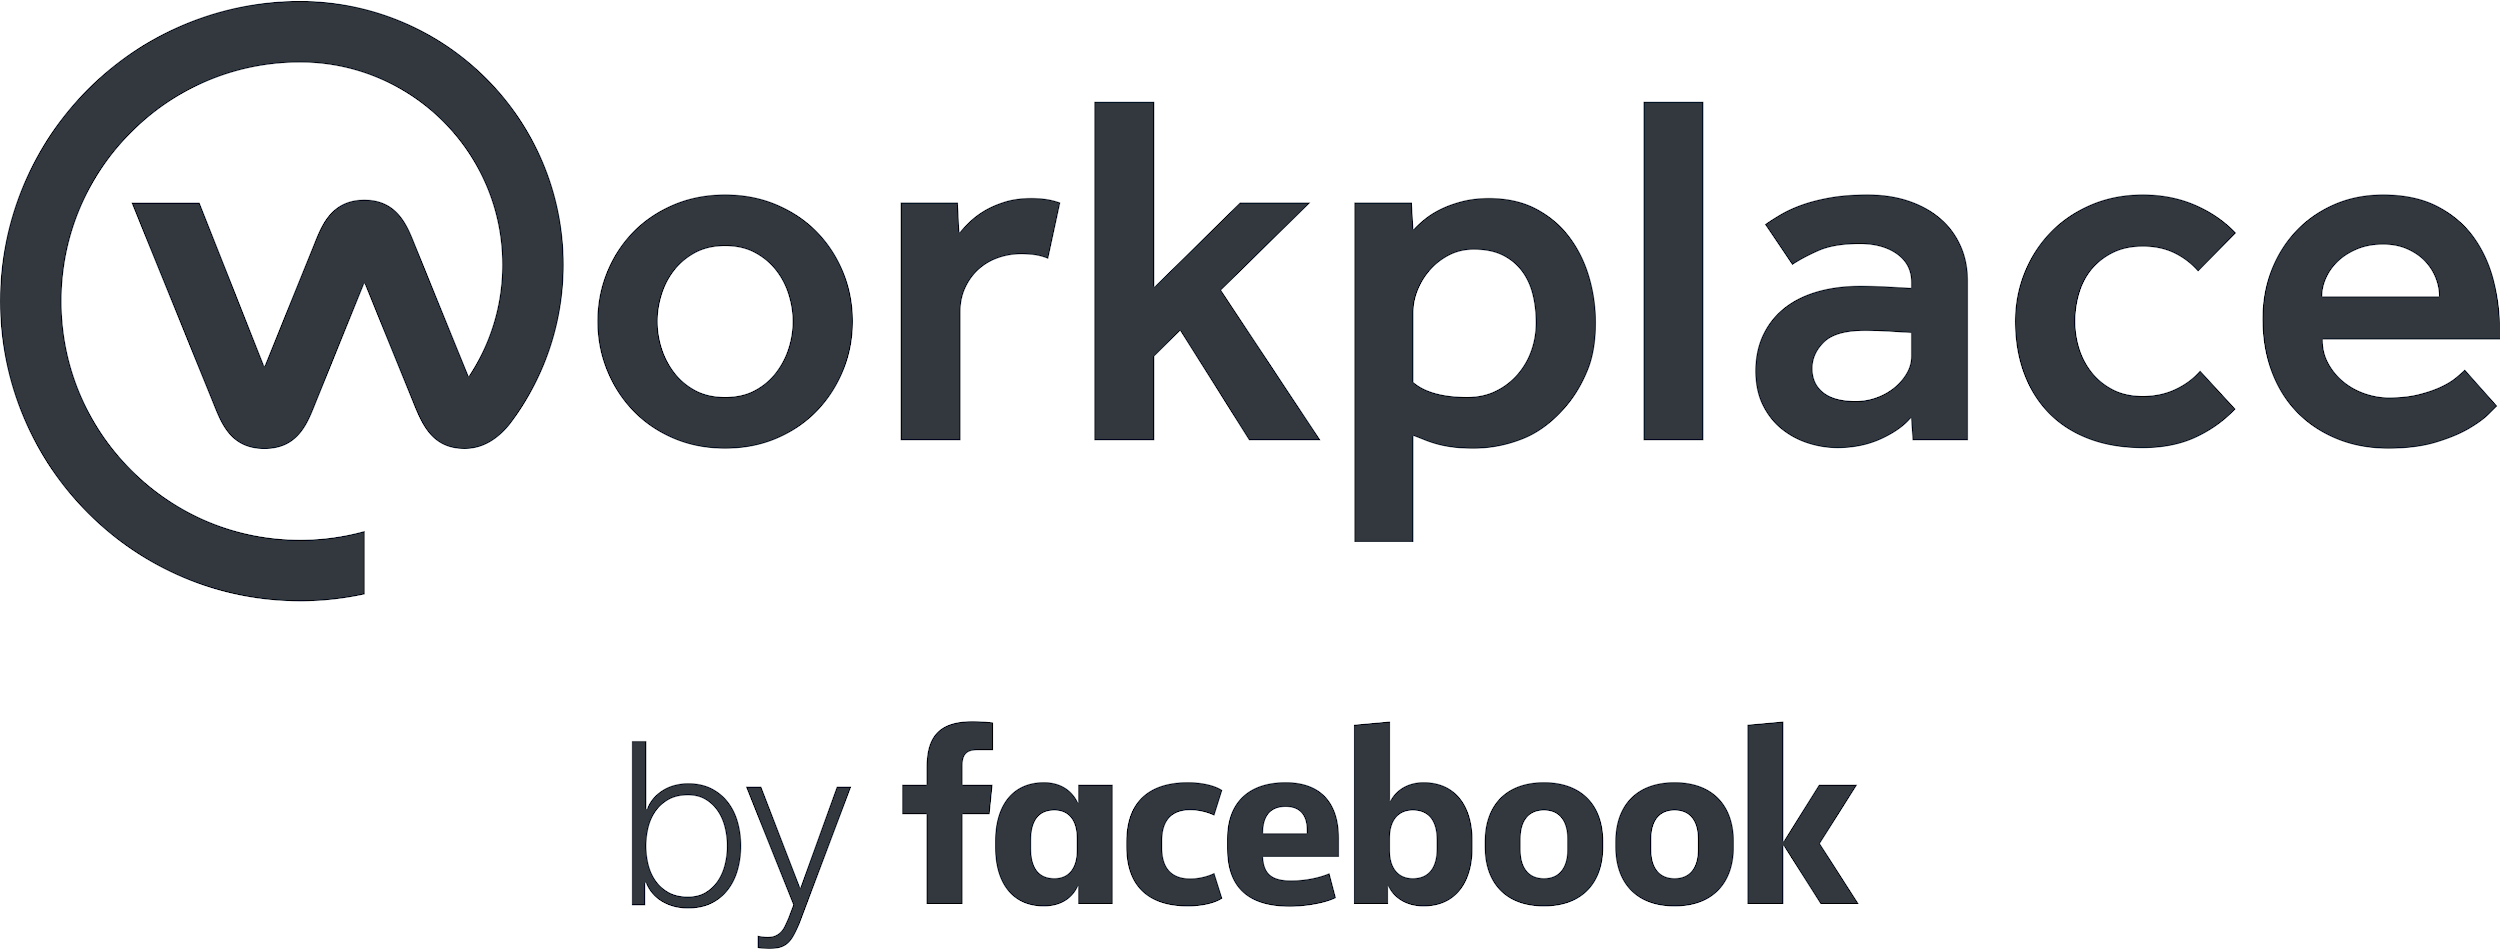 Facebook - Workplace - slack alternatives